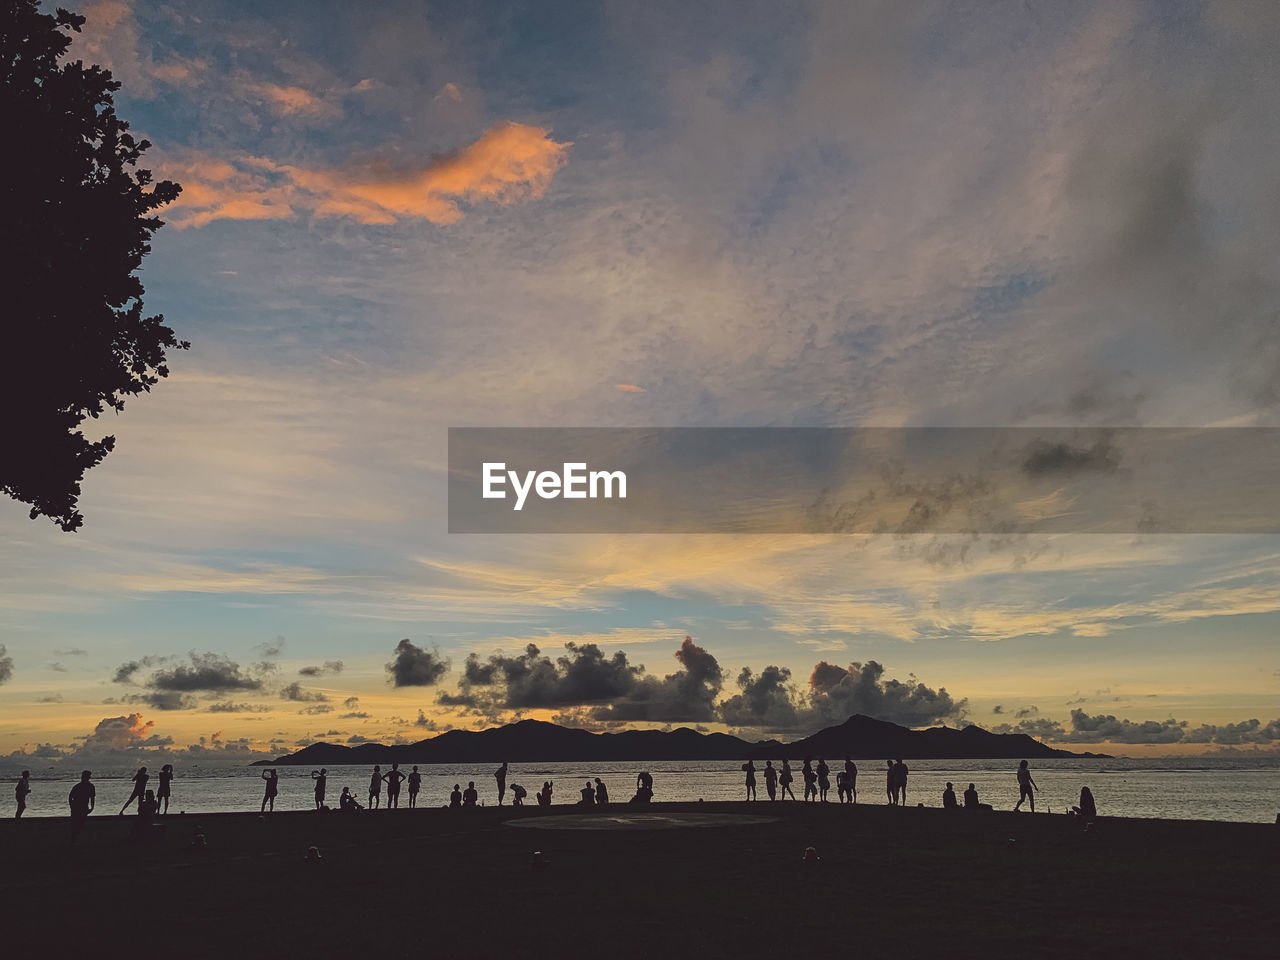 sky, sunset, cloud - sky, silhouette, beauty in nature, beach, water, scenics - nature, land, sea, orange color, nature, tranquility, tranquil scene, outdoors, dramatic sky, no people, non-urban scene, horizon over water